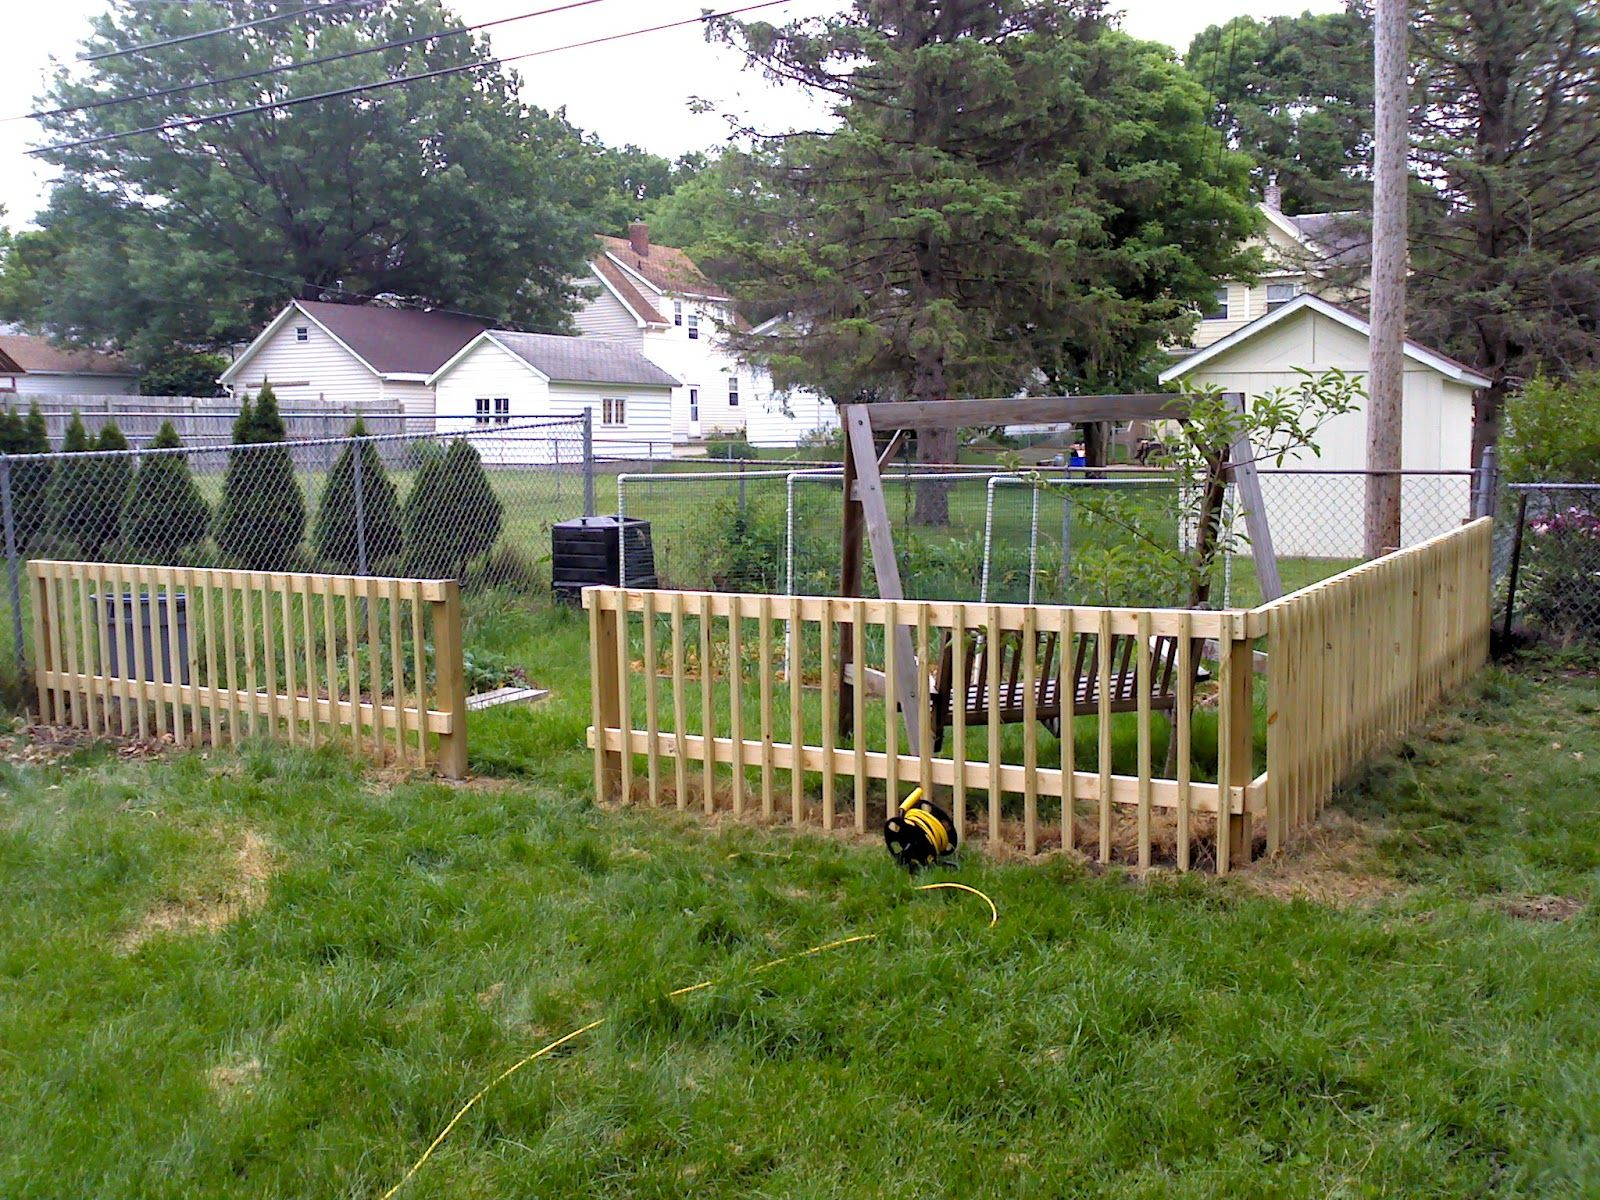 10 garden fence ideas that truly creative inspiring and low cost - Diy Garden Fence Ideas